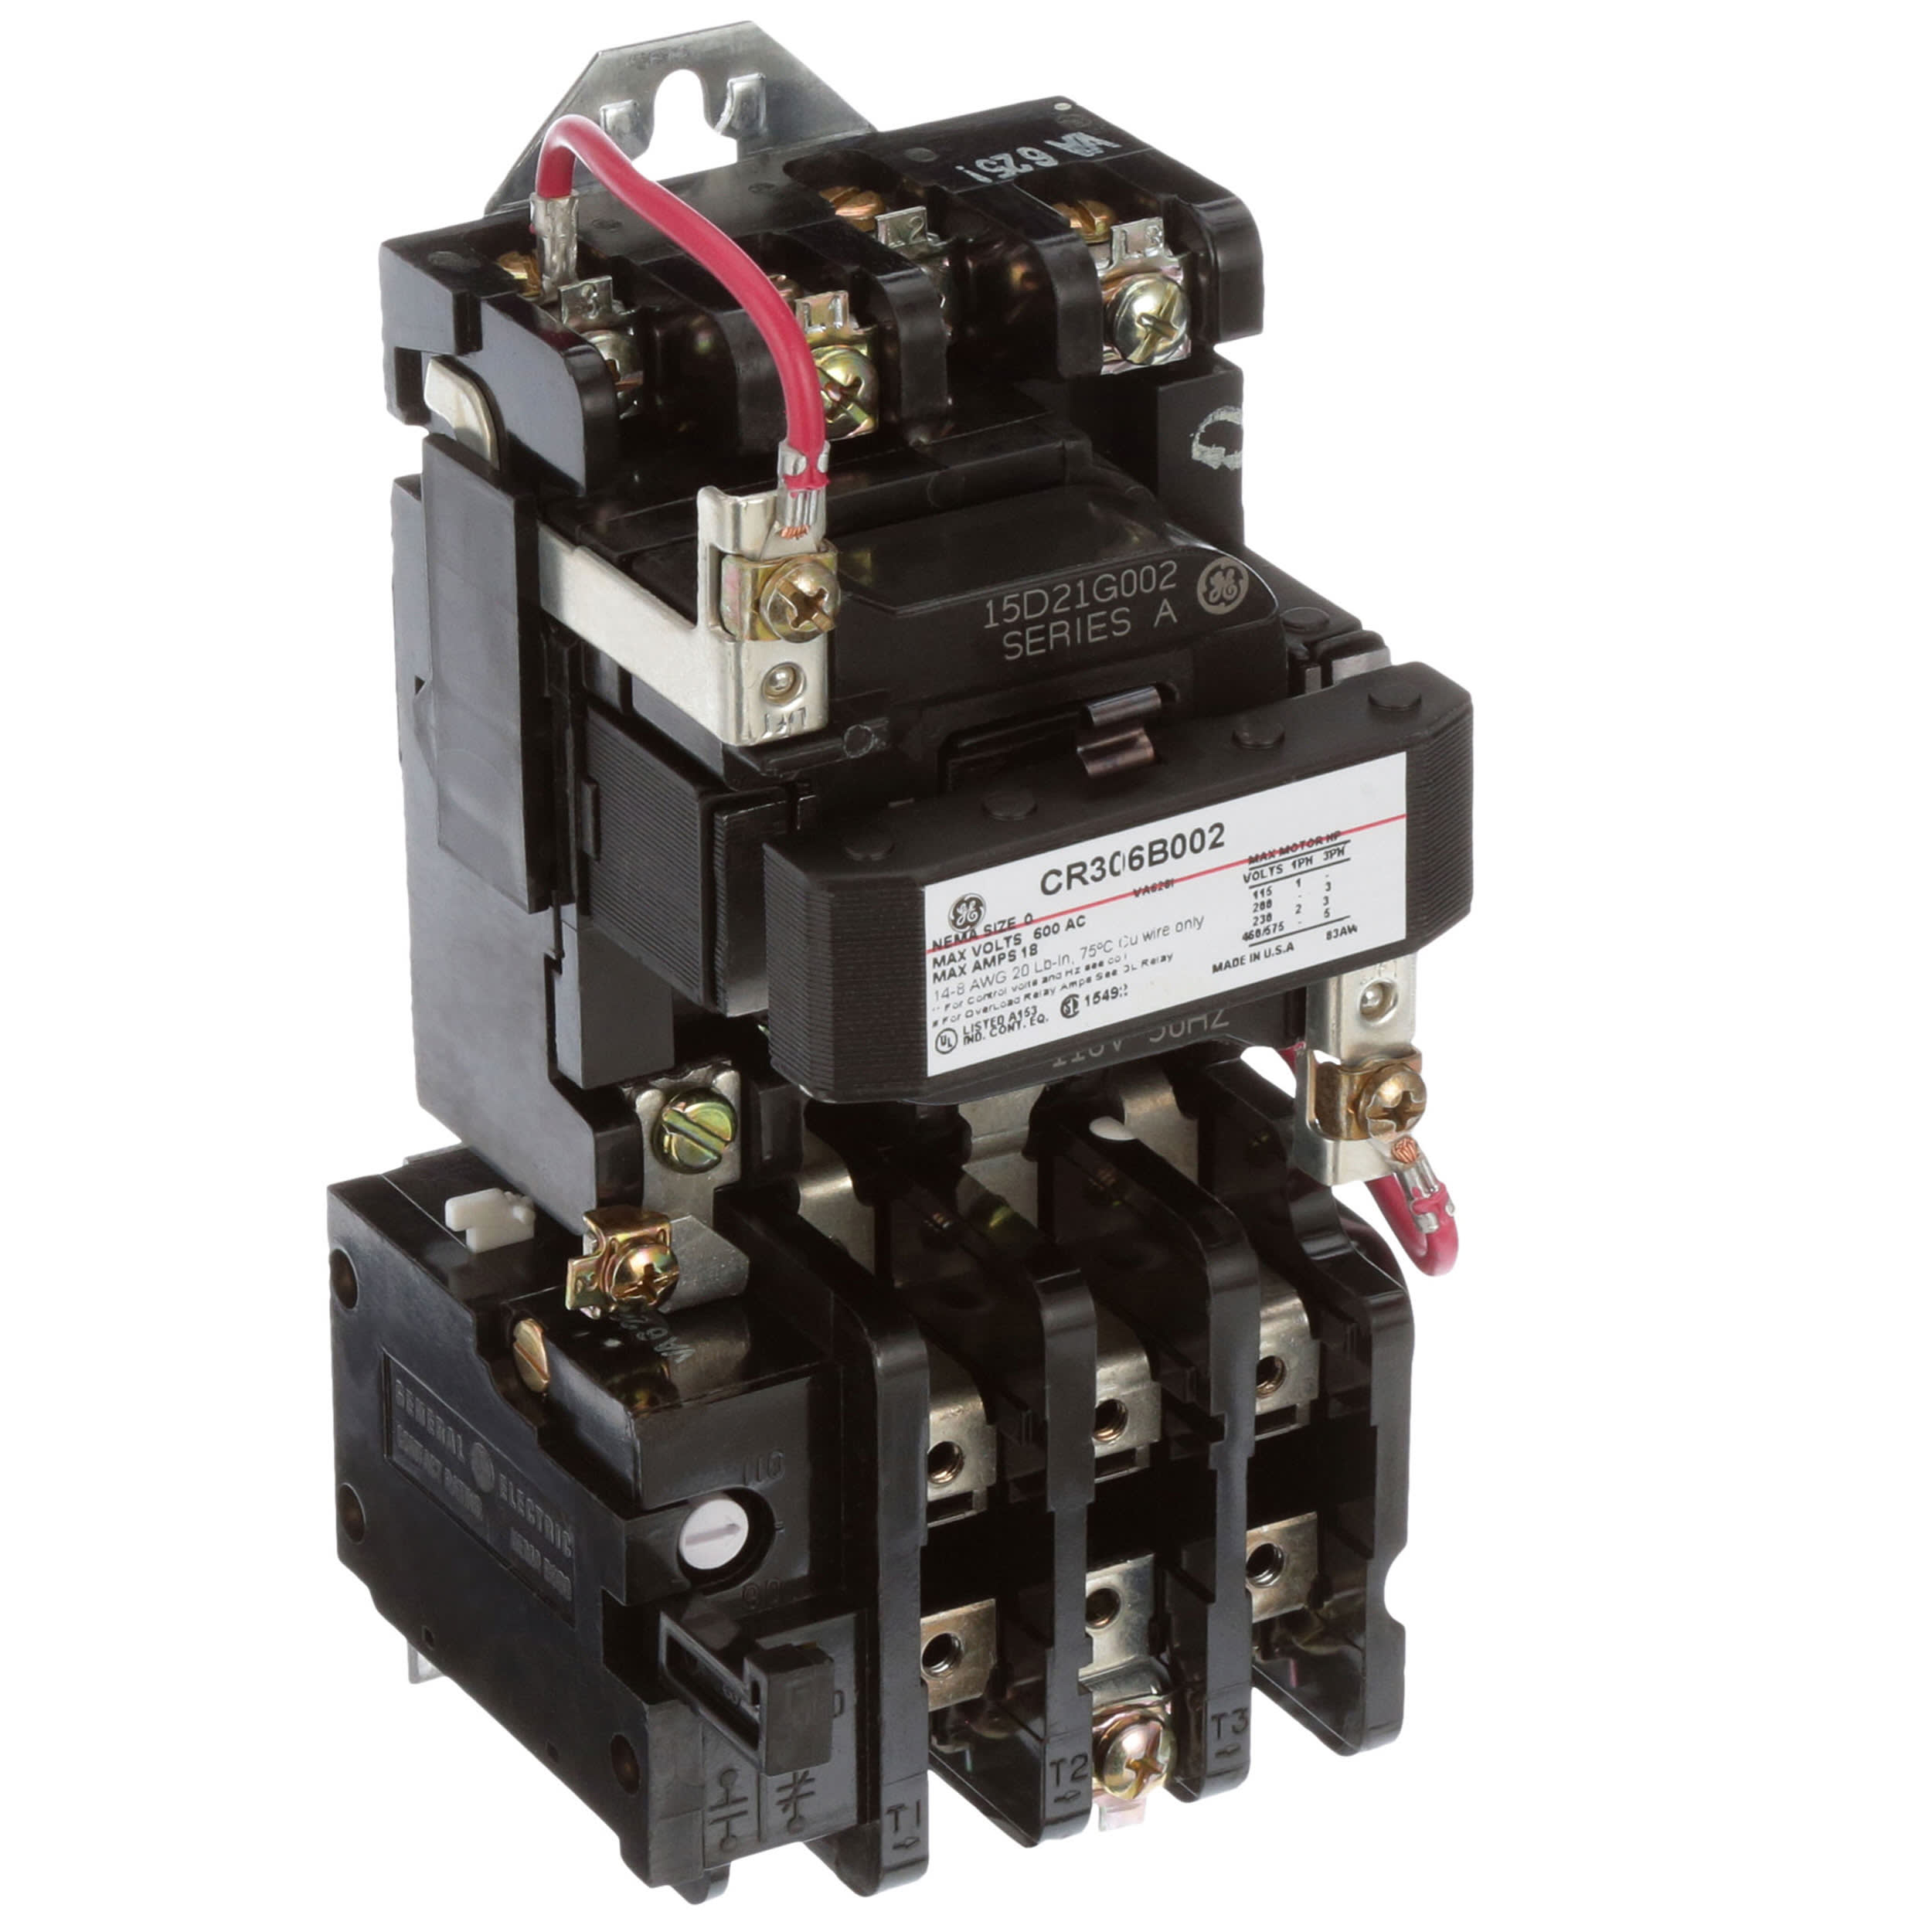 Industrial Connections & Solutions GE - CR306B002 - Starter, Three-Phase,  Magnetic, Open, 115-120V, 18A, NEMA 0 - Allied Electronics & Automation Allied Electronics